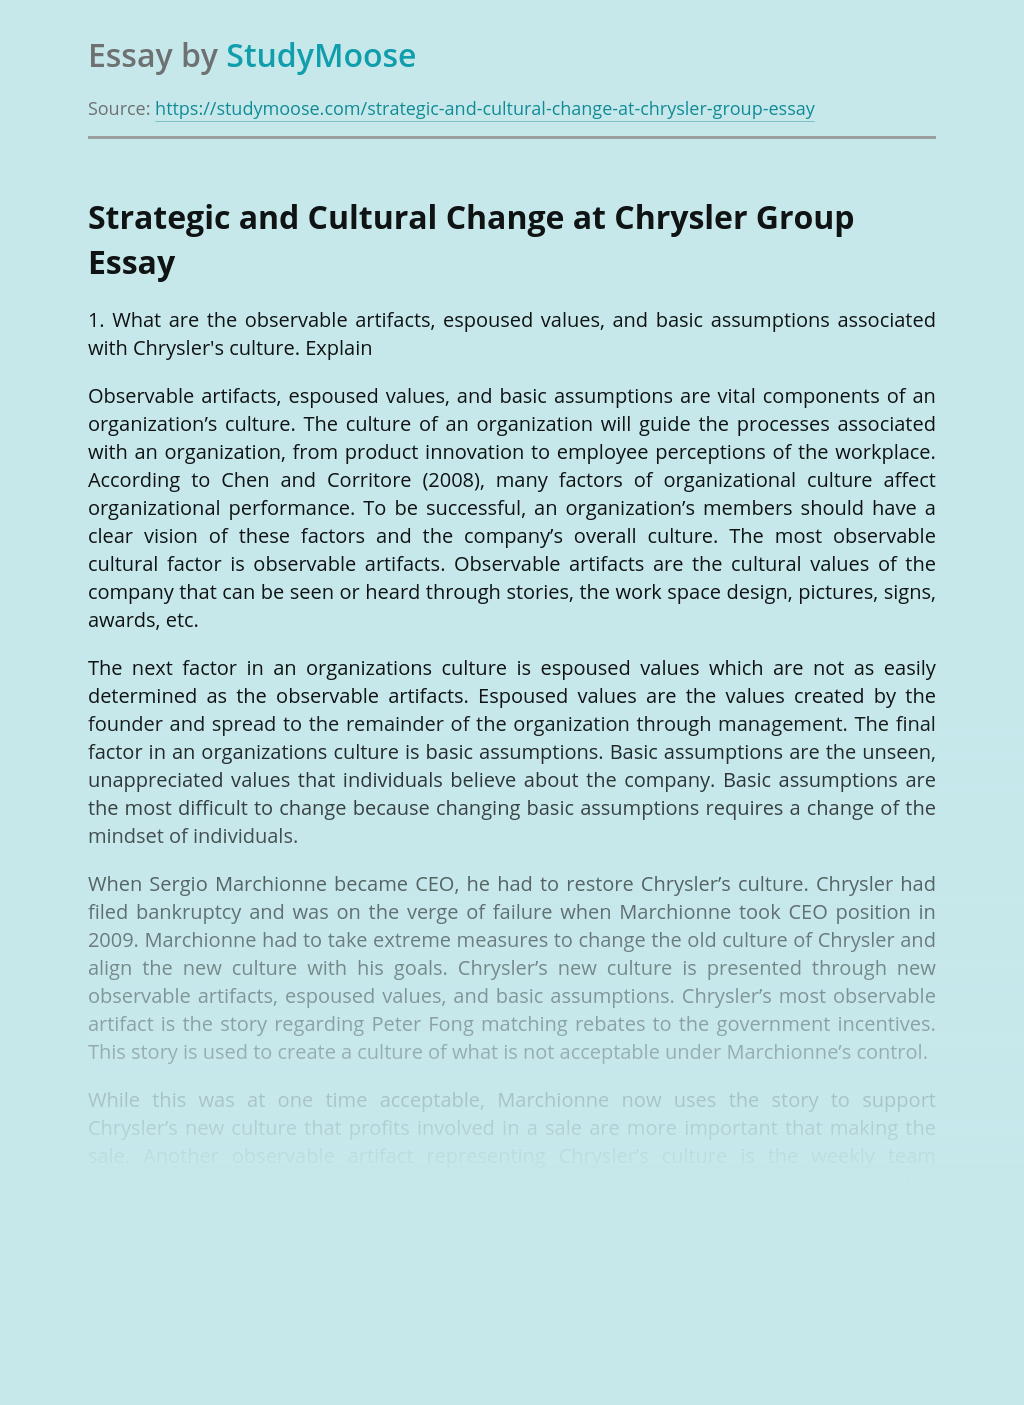 Strategic and Cultural Change at Chrysler Group